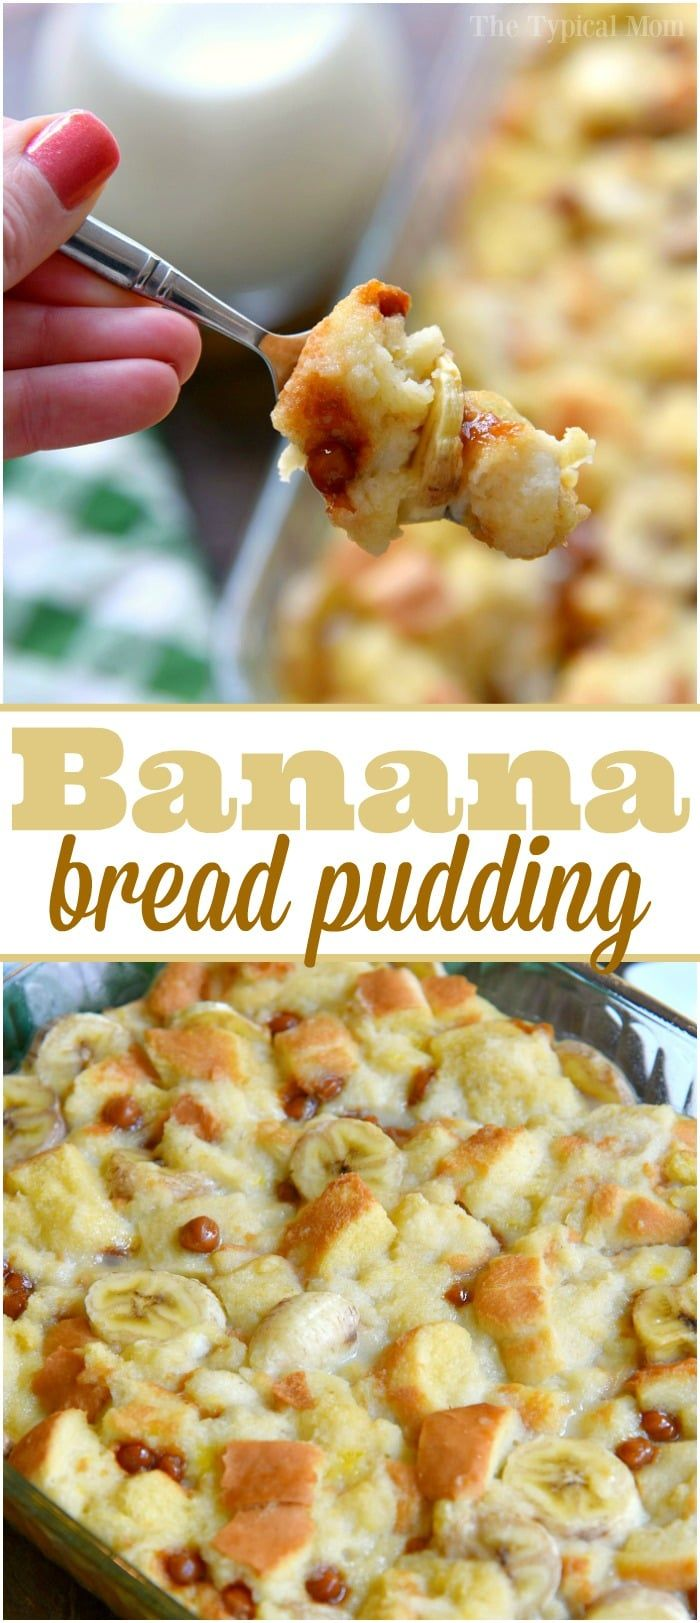 Easy banana bread pudding recipe that is so amazing!! You have to try this recipe for easy bread pudding and add your own mix ins! via @thetypicalmom